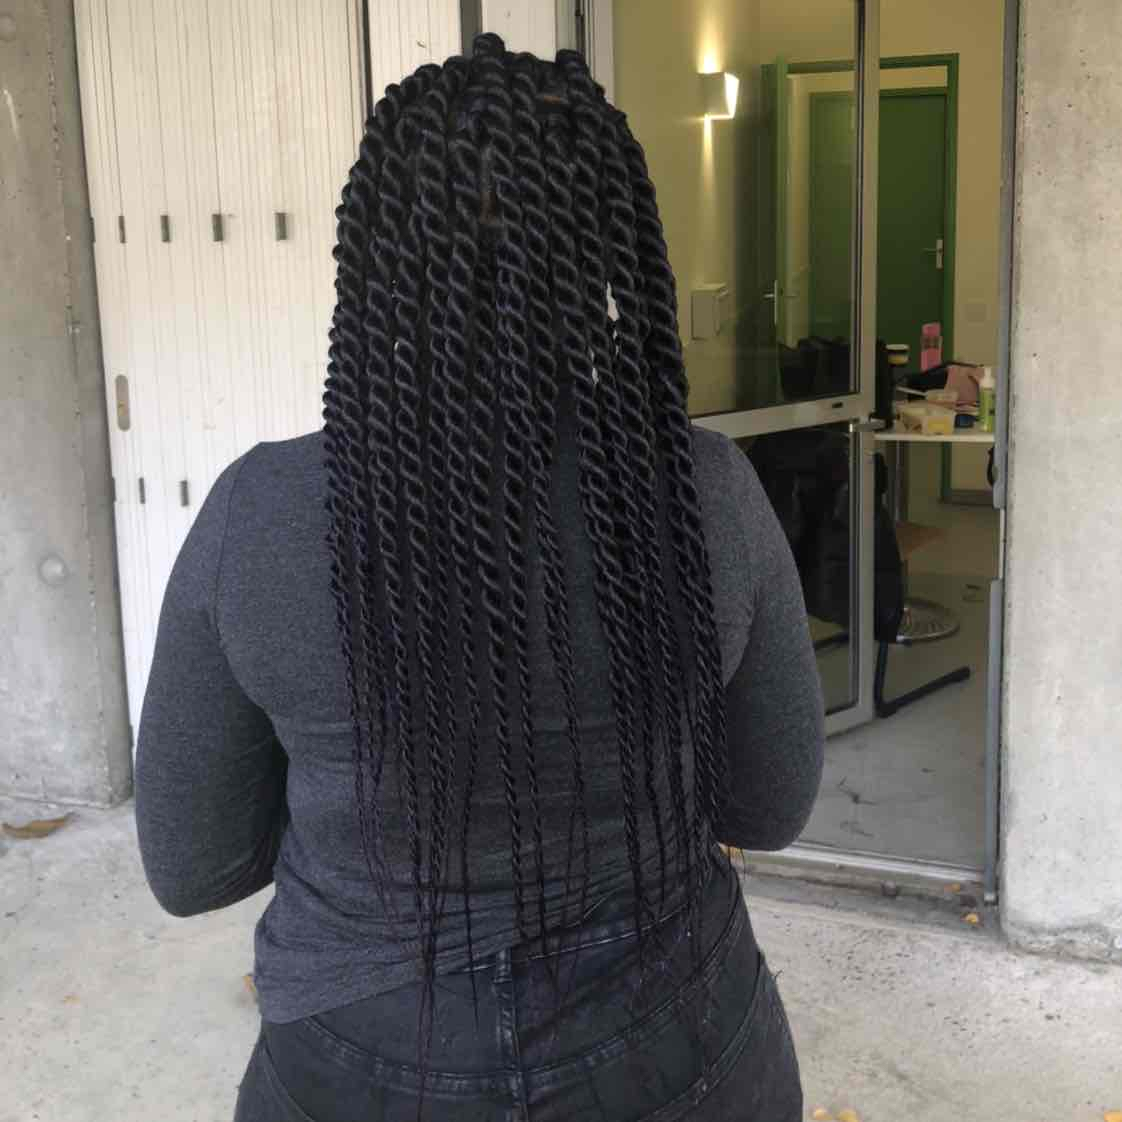 salon de coiffure afro tresse tresses box braids crochet braids vanilles tissages paris 75 77 78 91 92 93 94 95 SWIOAGOQ